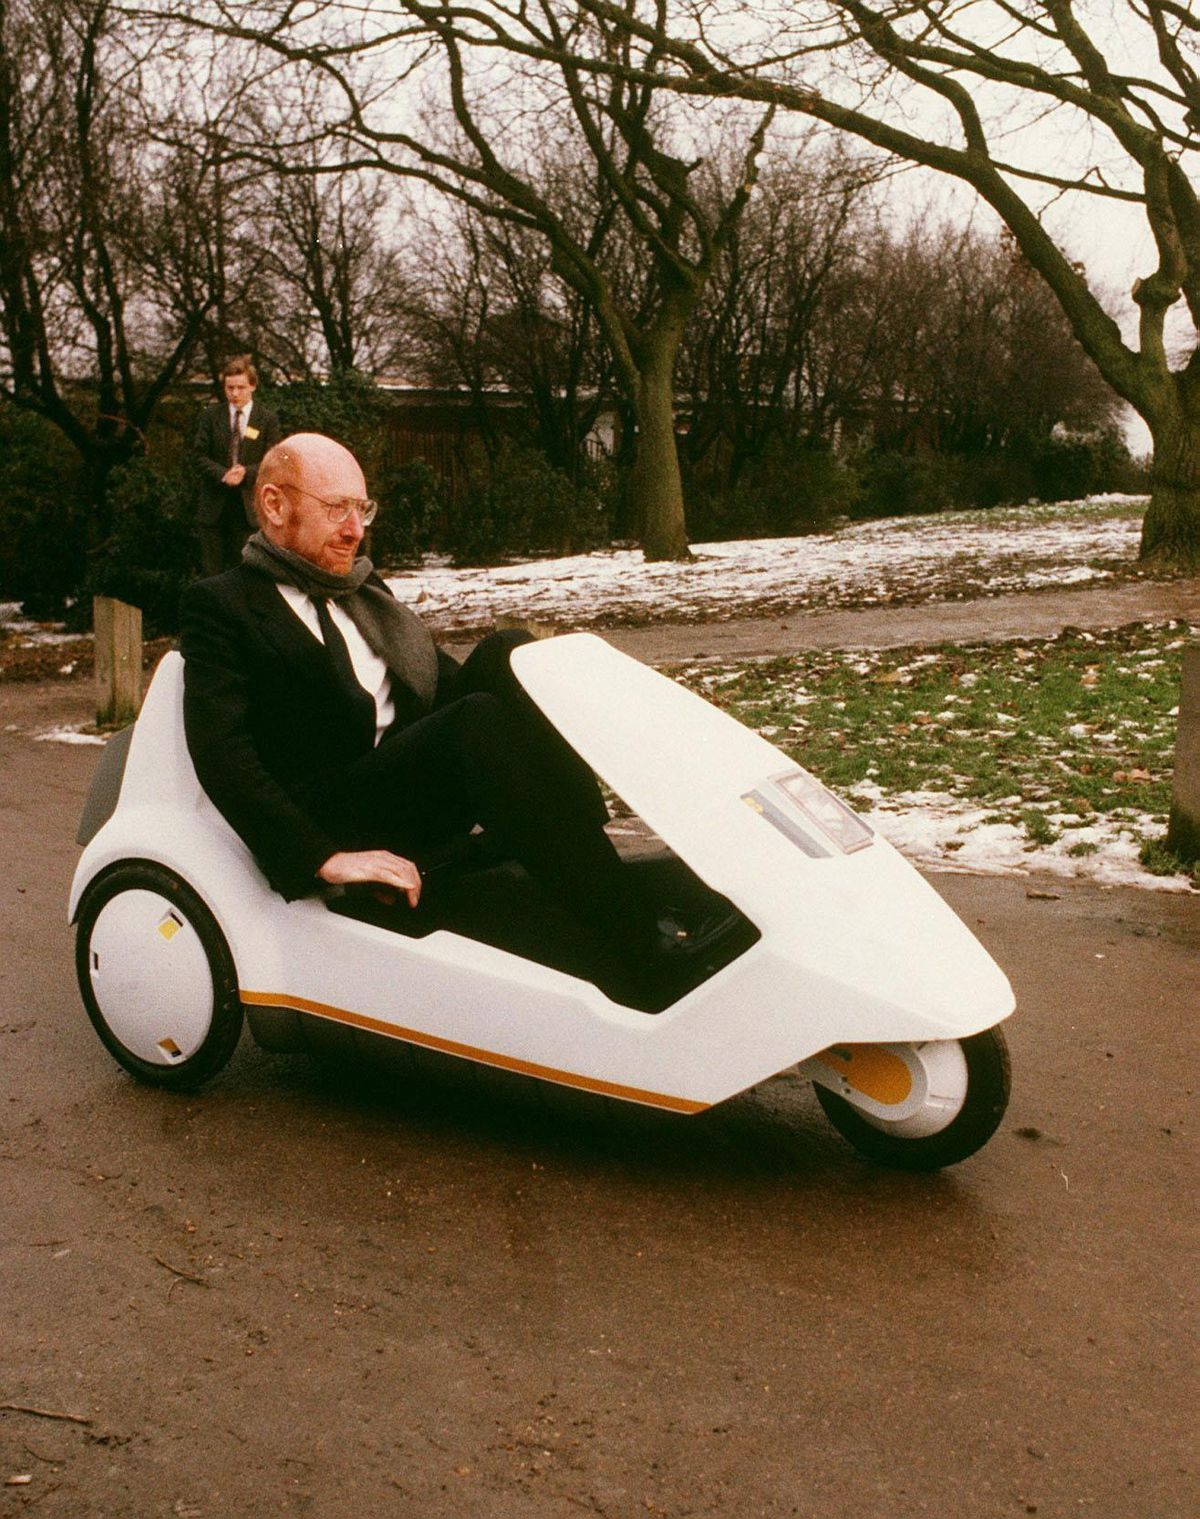 Sir Clive Sinclair demonstrating his C5 electric vehicle in 1985